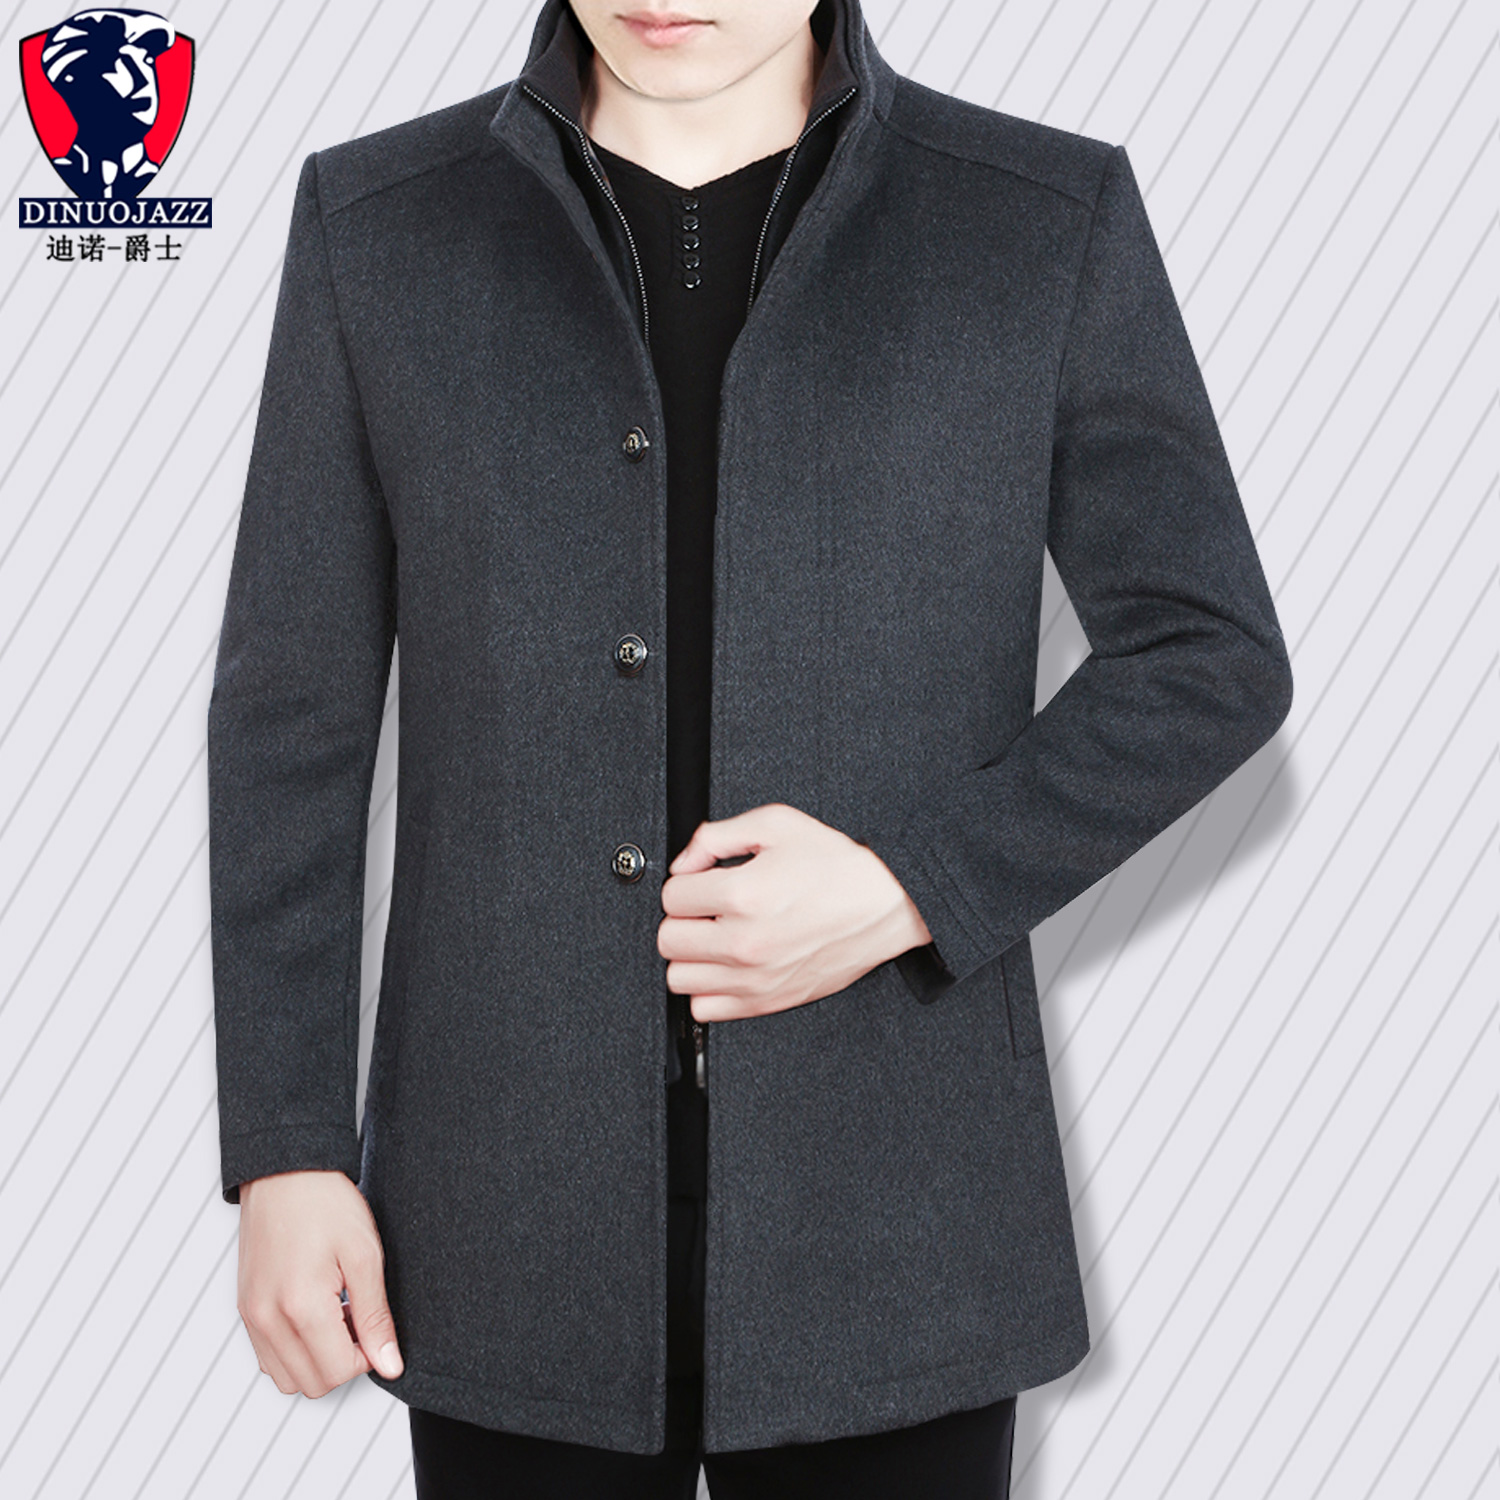 2019 New Men's Winter Coat Trench Wool Warm Casual Single-breasted Collar Cashmere Classic Men's Top Windbreaker